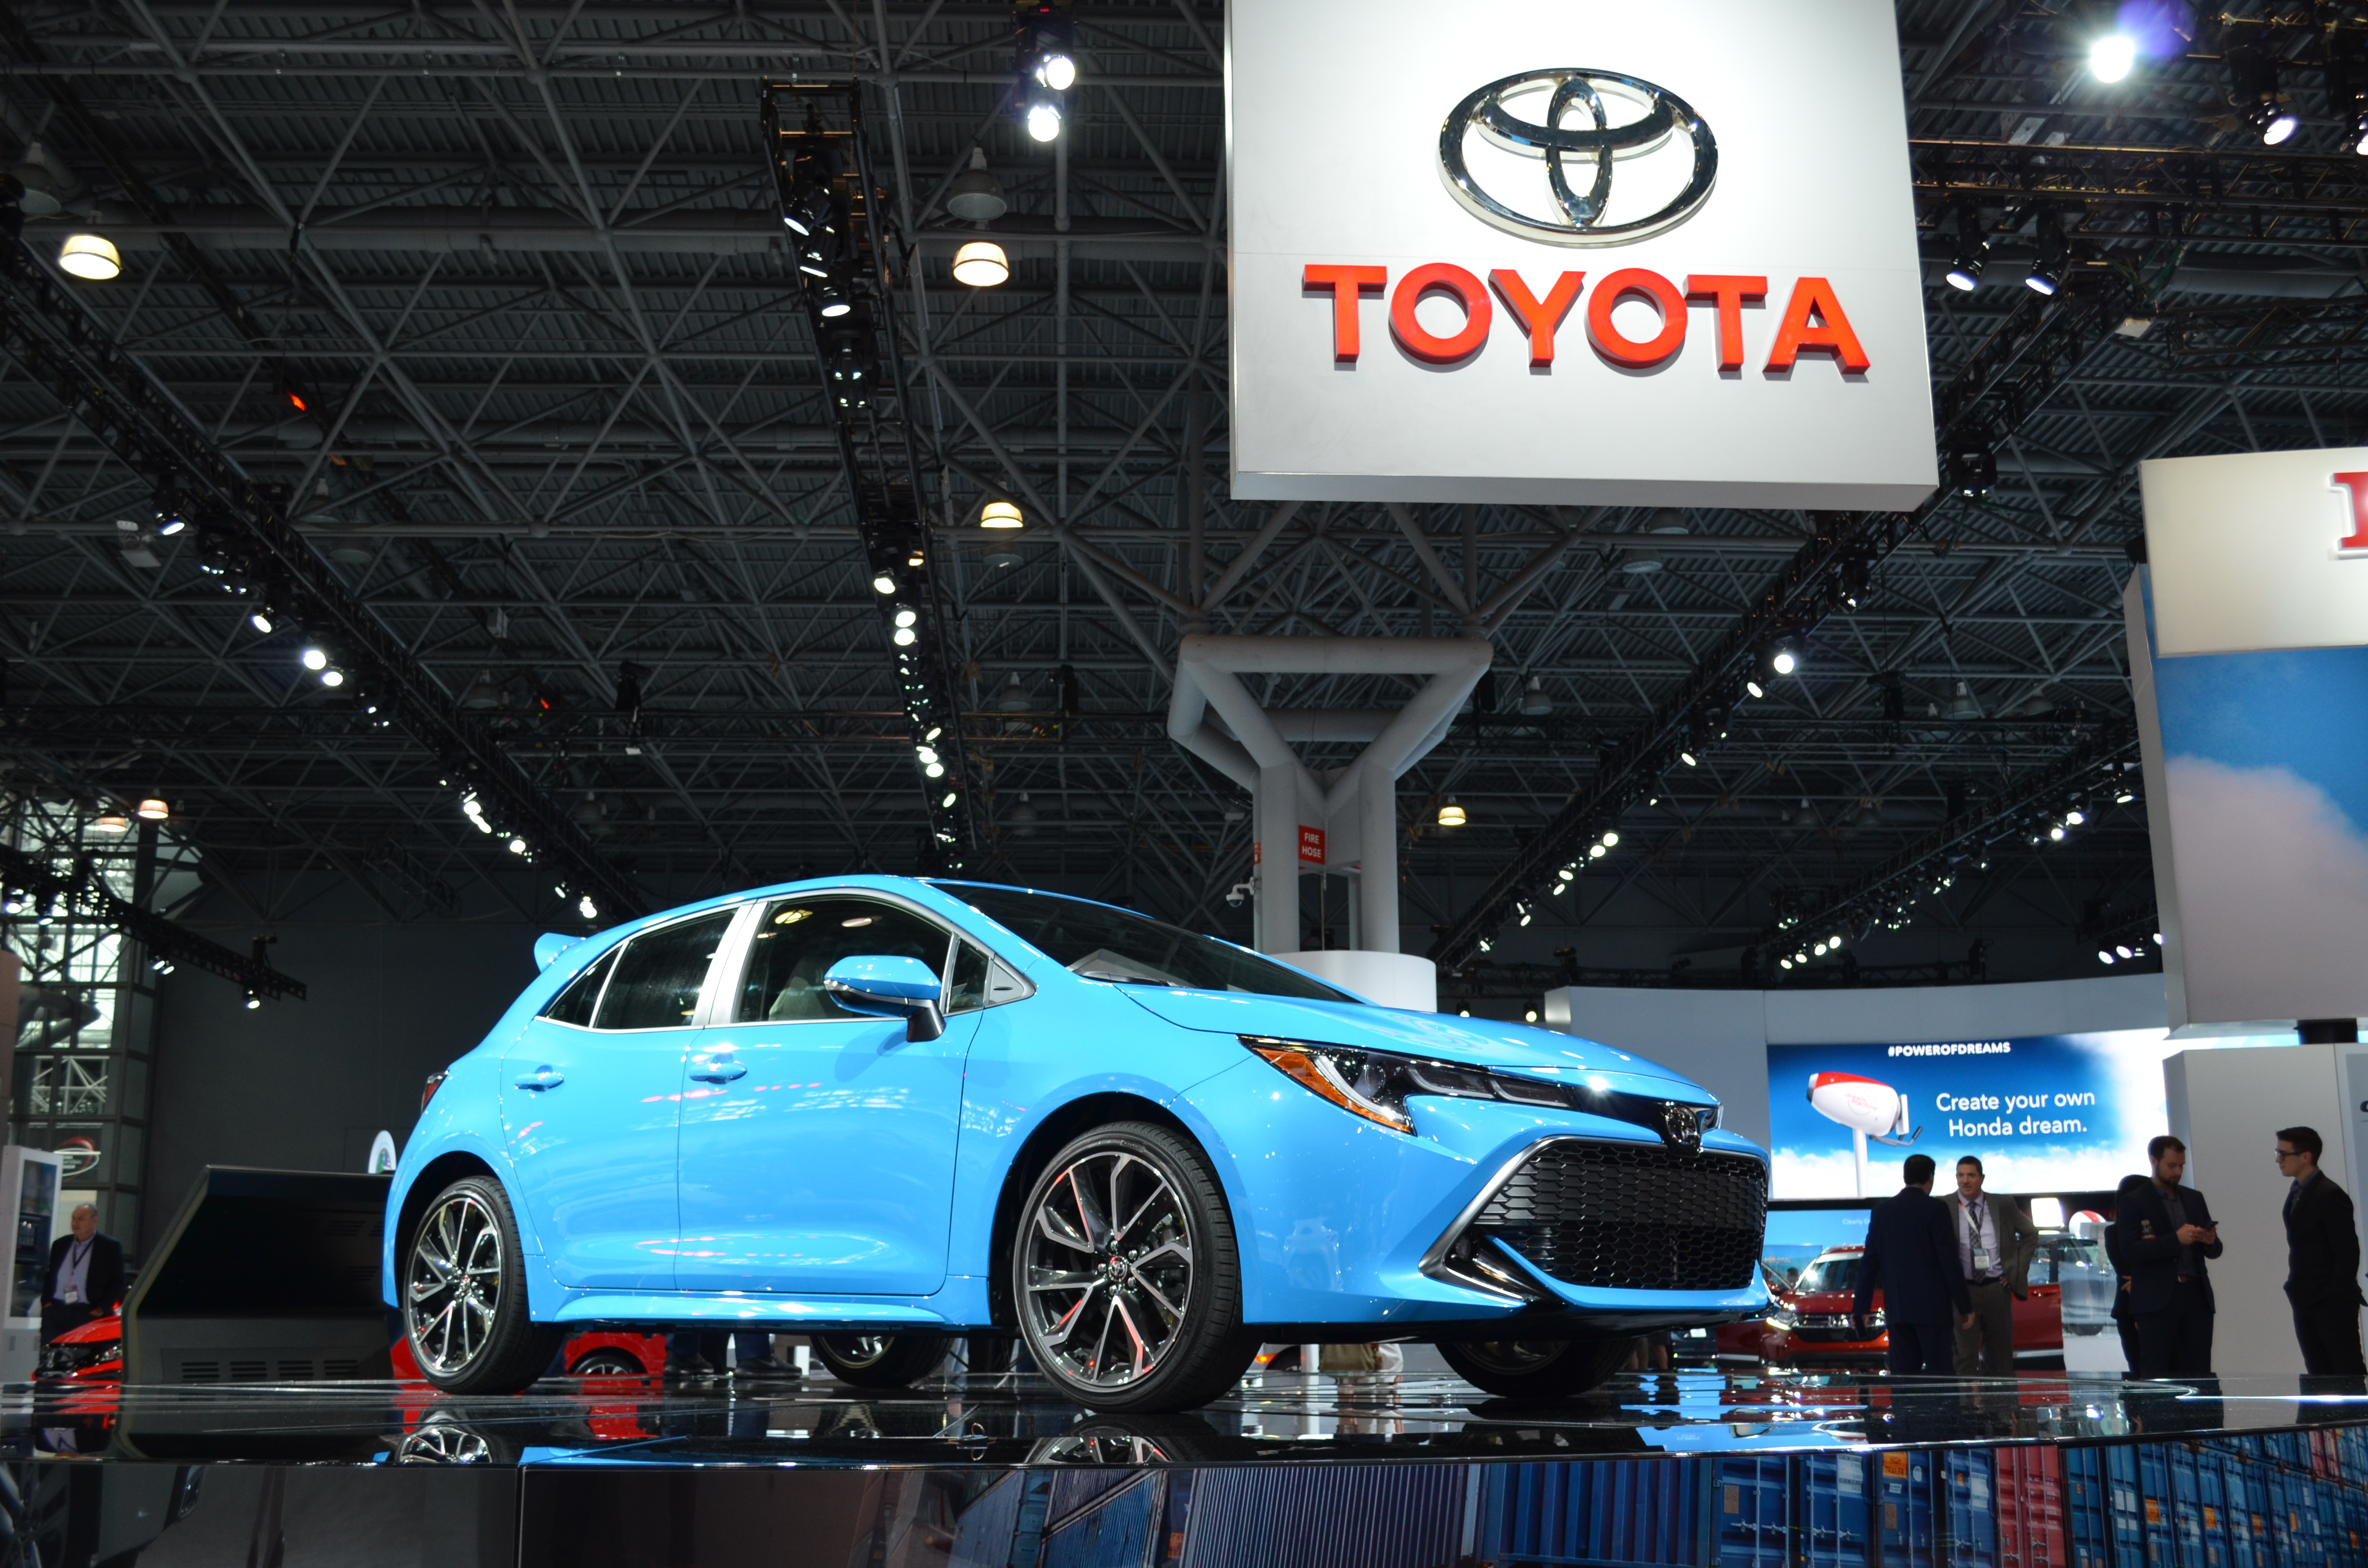 Toyota Premiered the All-New 2019 Toyota Corolla Hatchback at the New York International Auto Show this Week